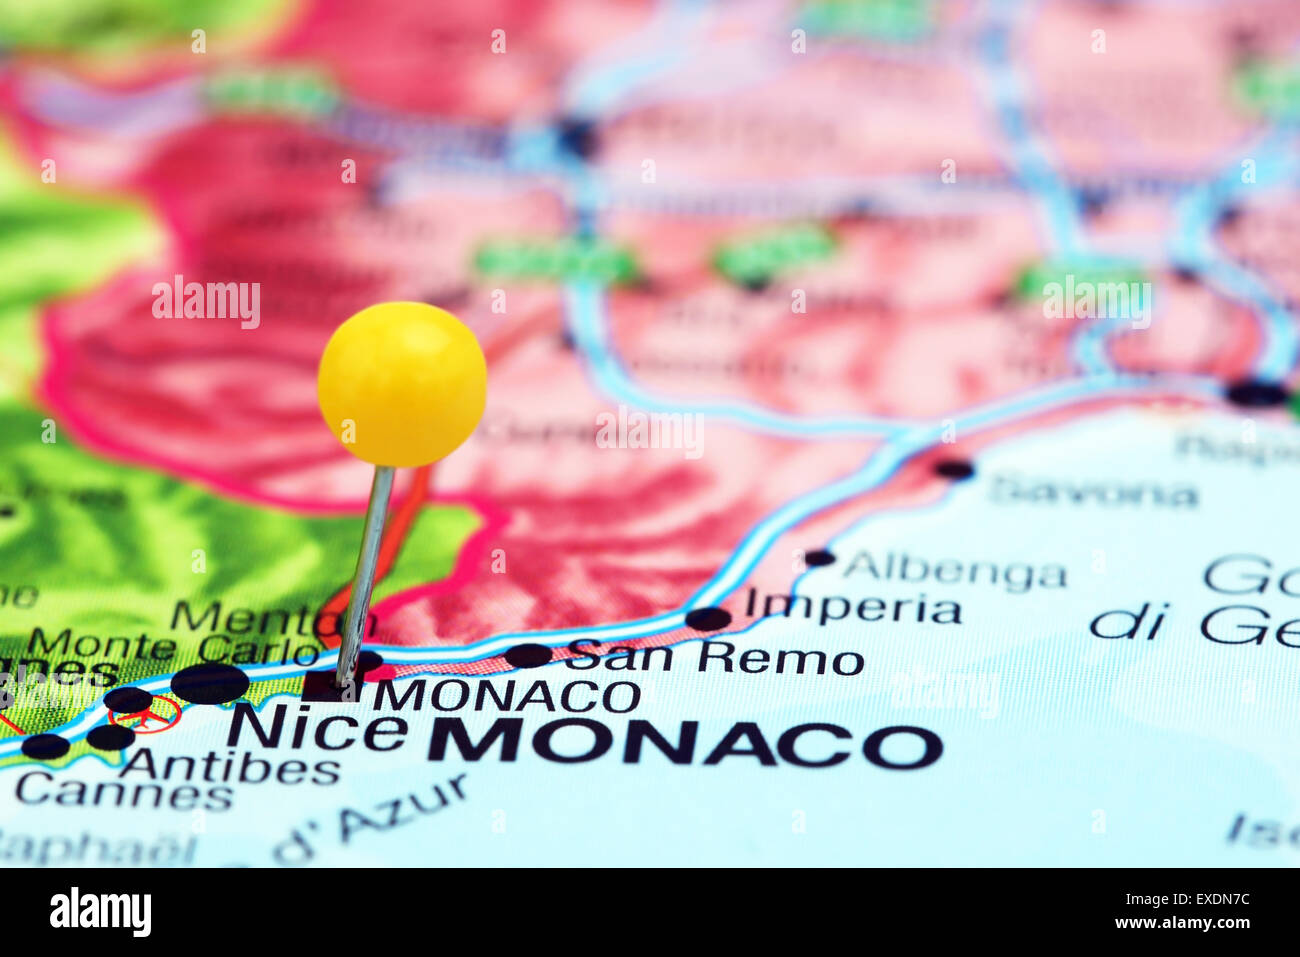 Monaco Pinned On A Map Of Europe Stock Photo 85124576 Alamy